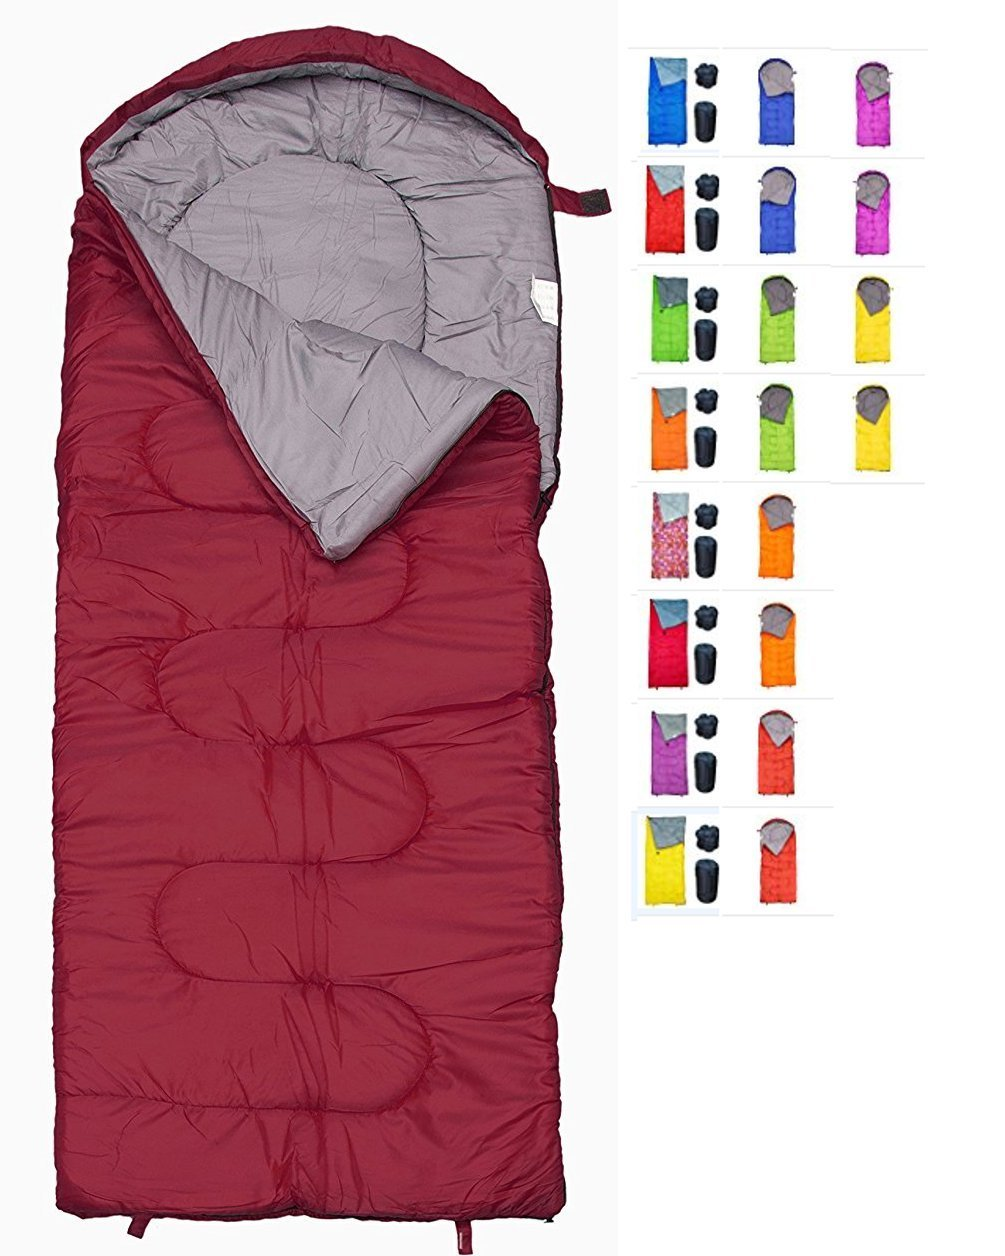 REVALCAMP Sleeping Bag for Cold Weather - 4 Season Envelope Shape Bags by Great for Kids, Teens & Adults. Warm and Lightweight - Perfect for Hiking, Backpacking & Camping (Bordeaux - Left Zip)